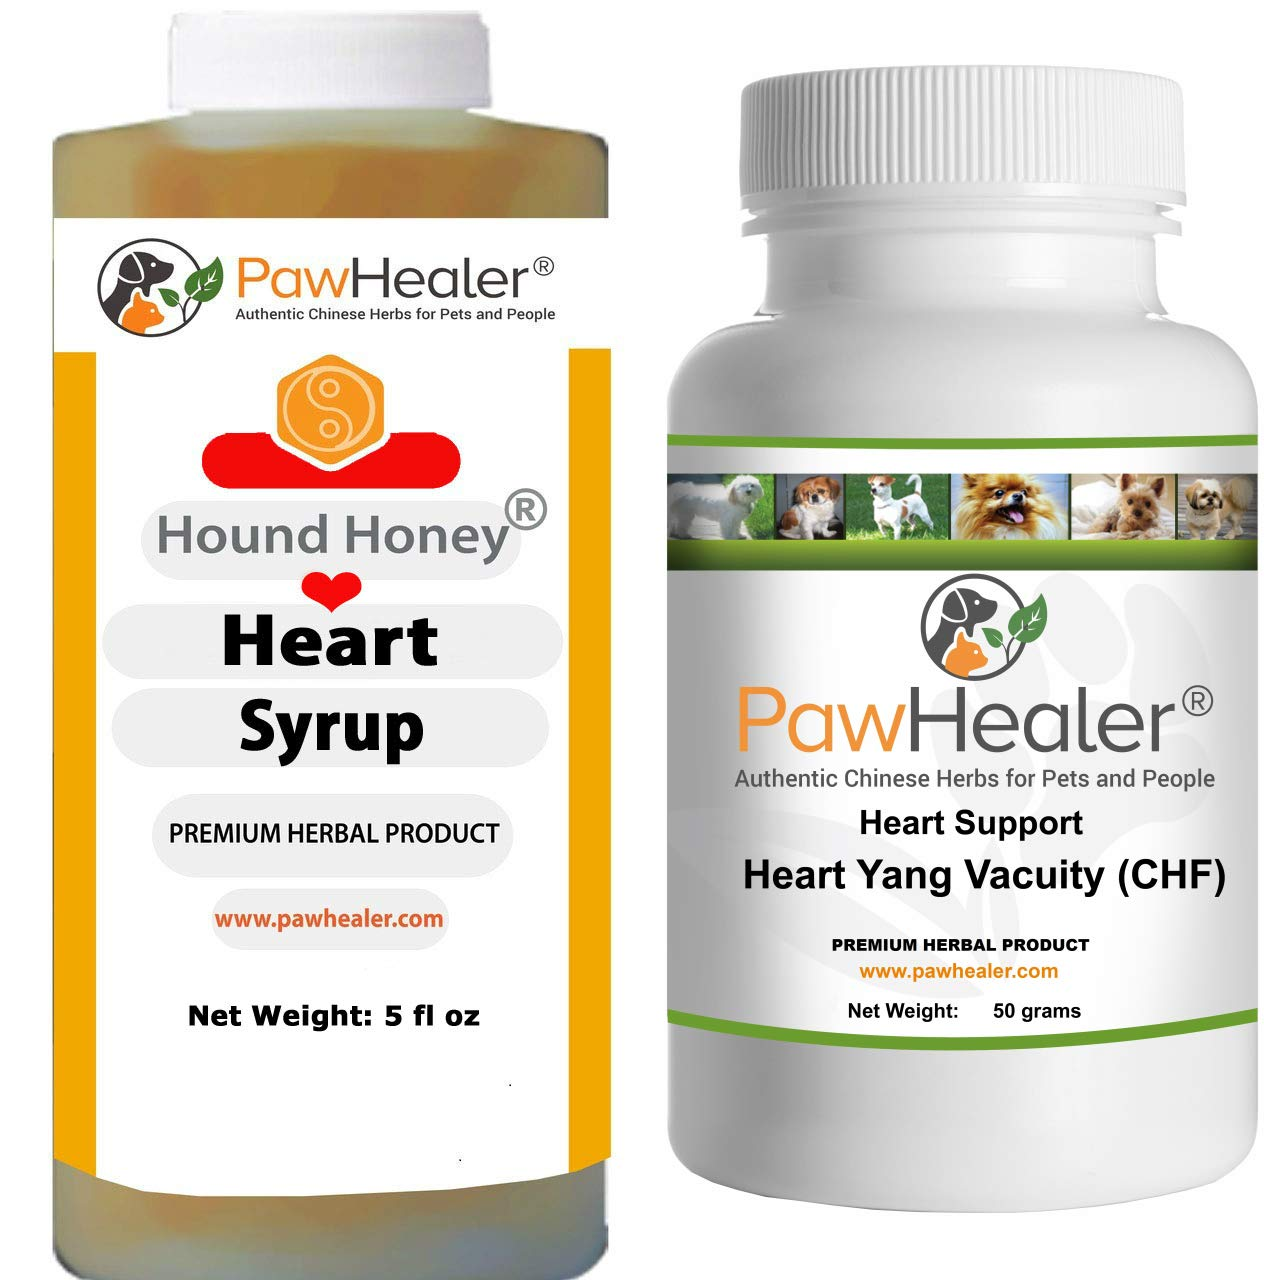 Heart Support - Bundle - Heart-Yang Vacuity (CHF) - 50 Grams Herbal Powder + Hound Honey: Heart Syrup - 5 fl oz (150 ml) - Coughing, Gagging, Wheezing Due to Heart Condition - Remedy for Dogs & Pets... by PawHealer®